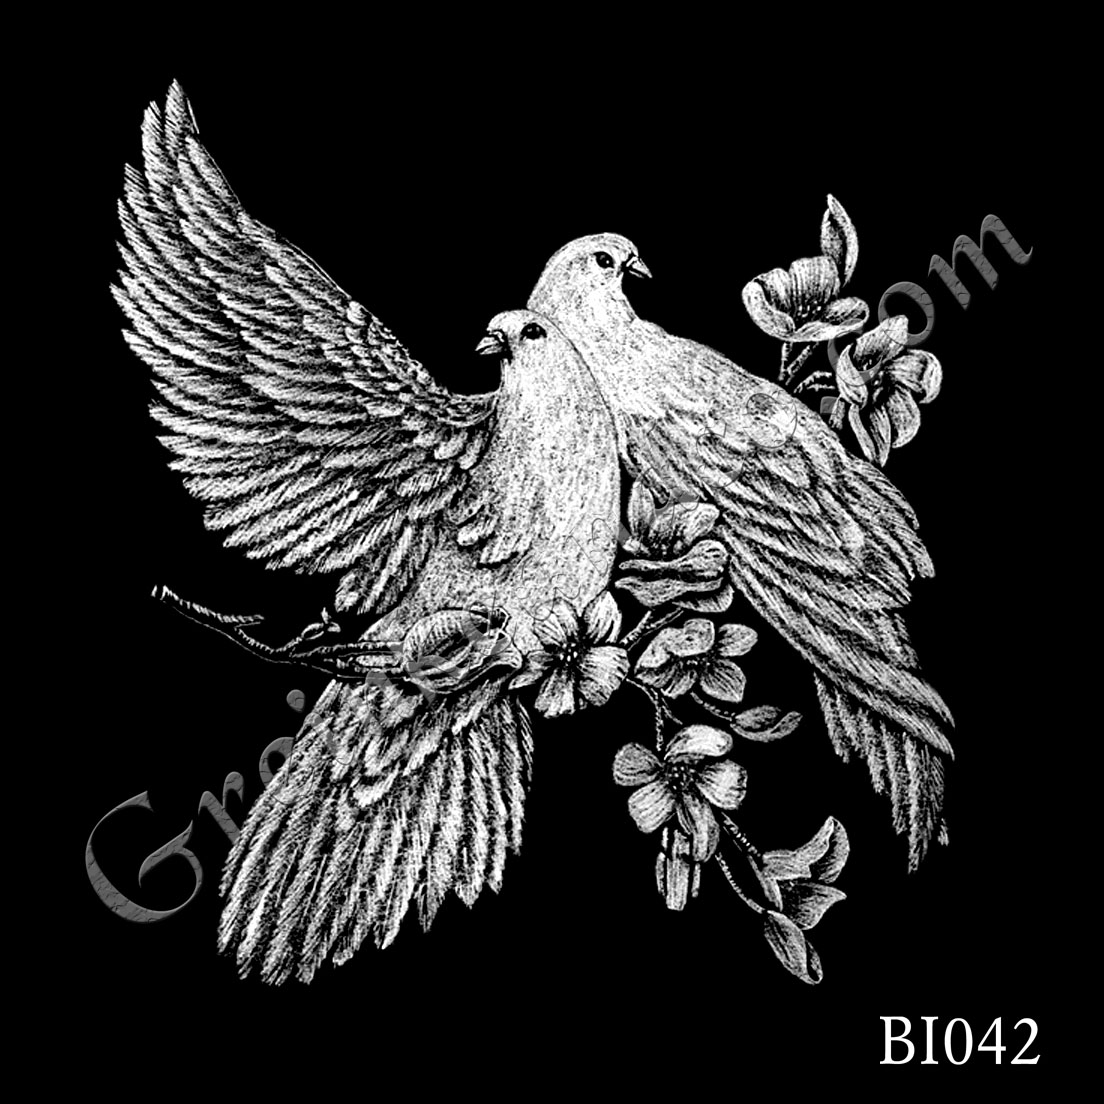 BI042 - Doves on Branch